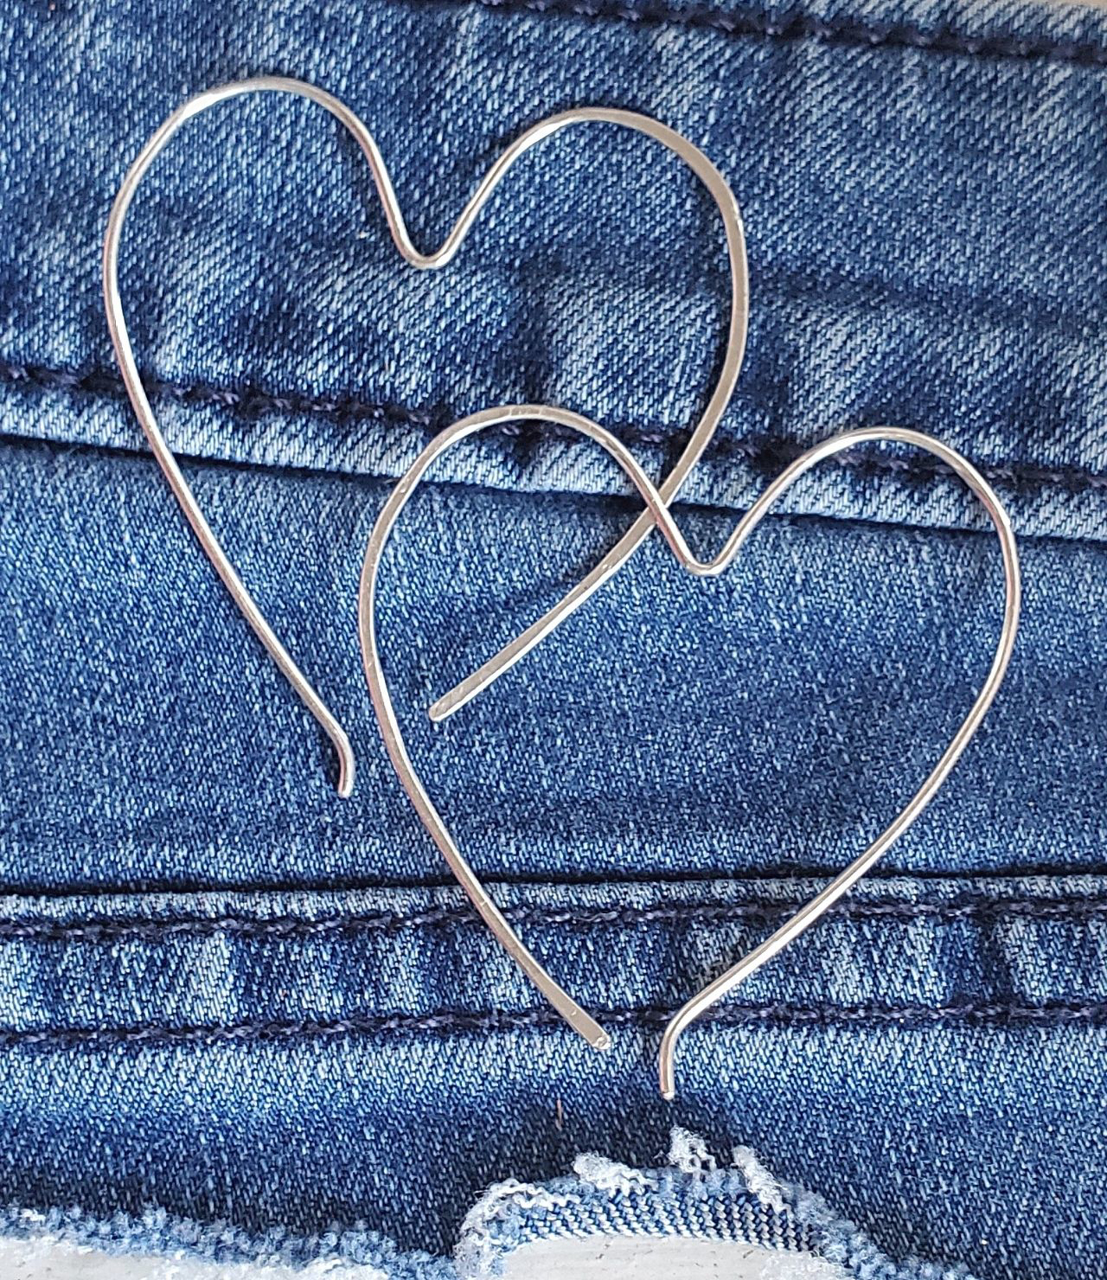 Silver heart hoop earrings on denim